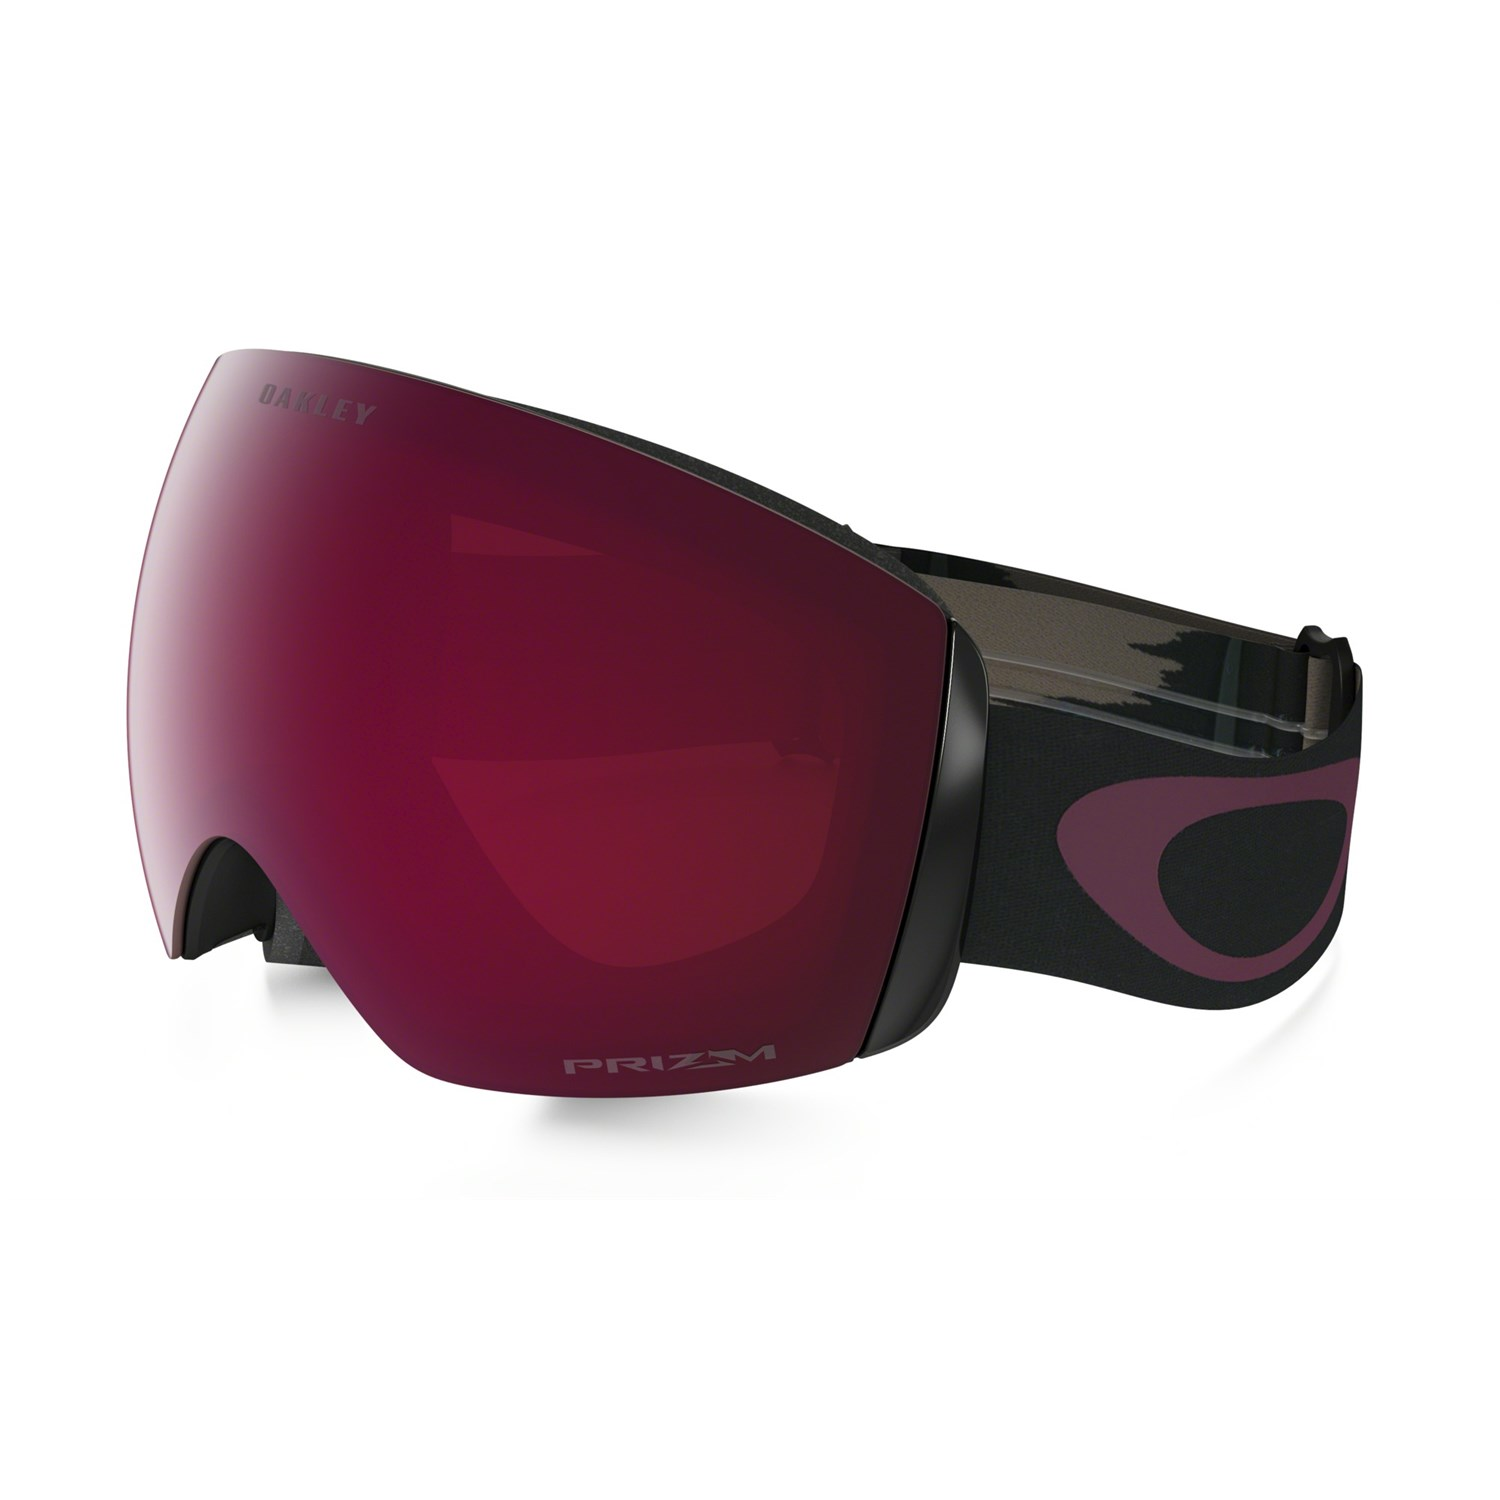 oakley otg goggles  Oakley Flight Deck Asian Fit Goggles